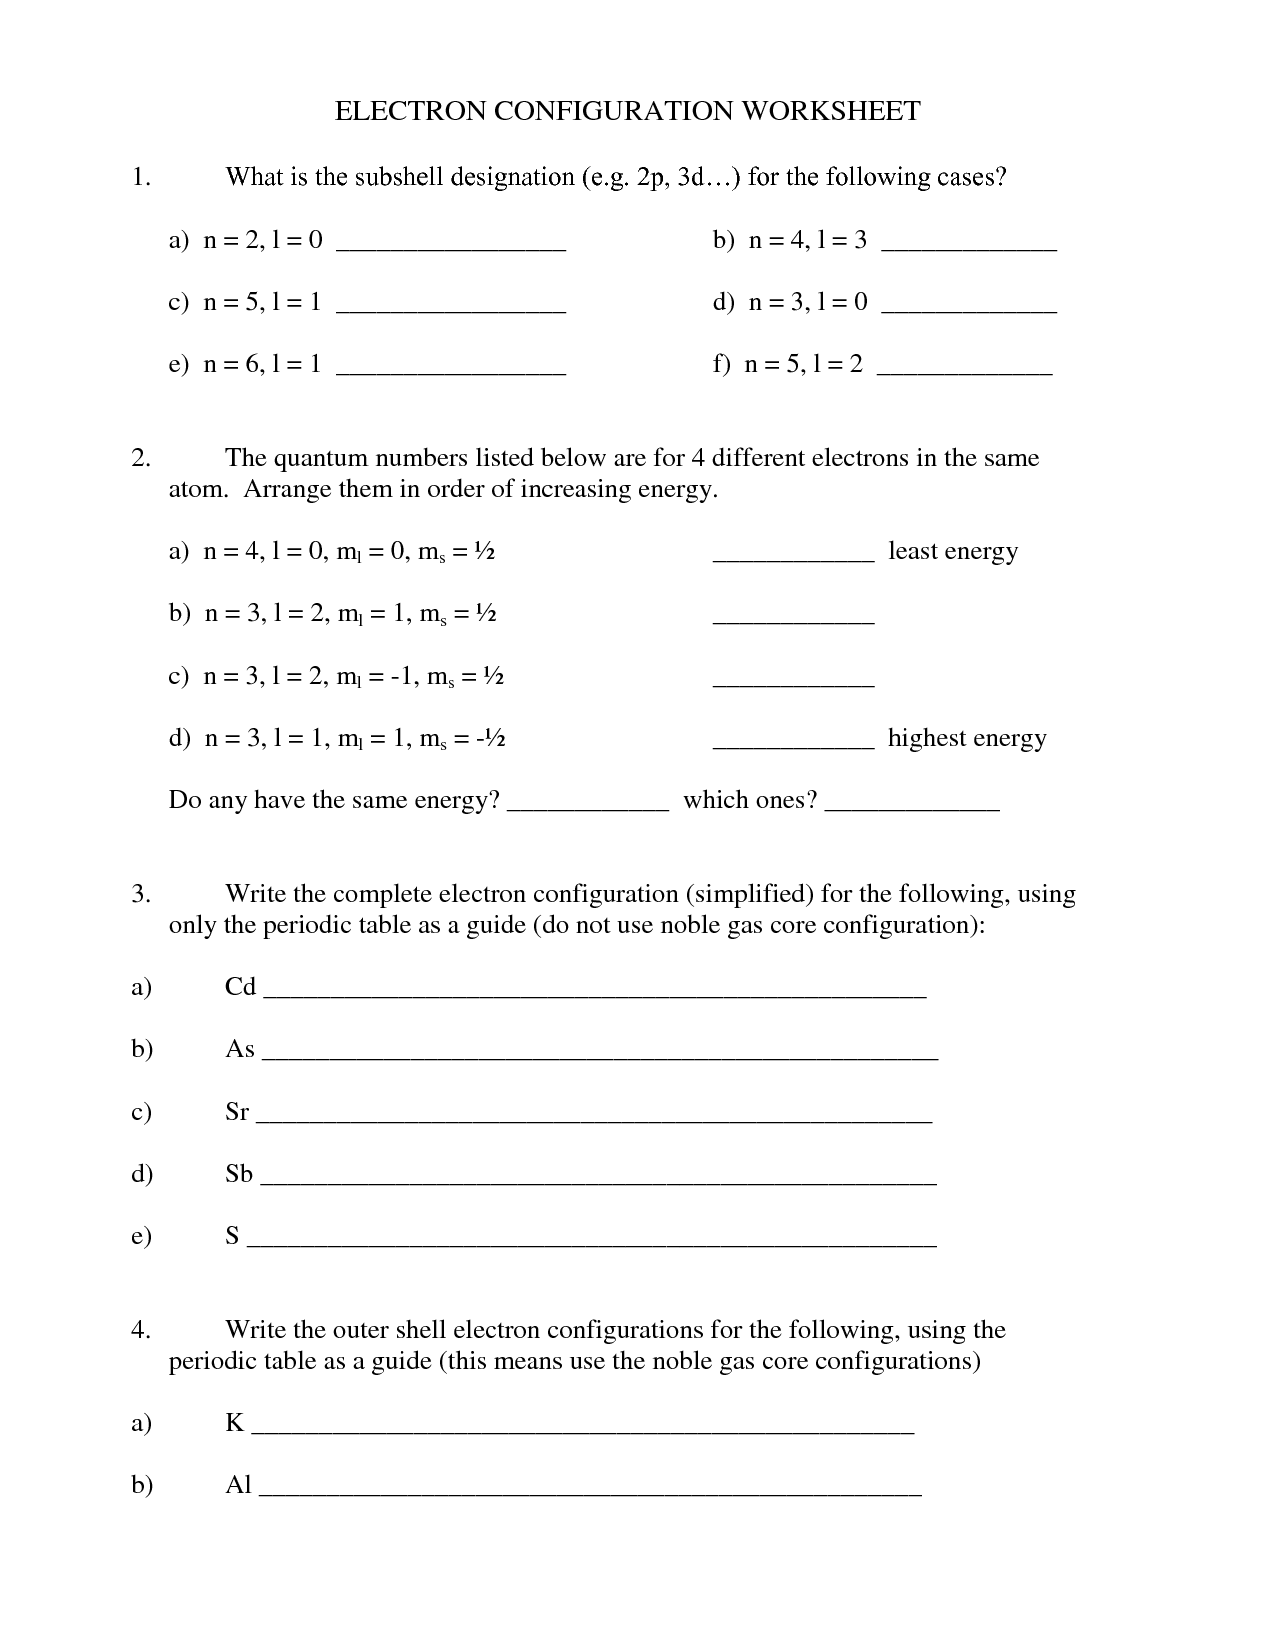 Worksheet For Electron Configuration